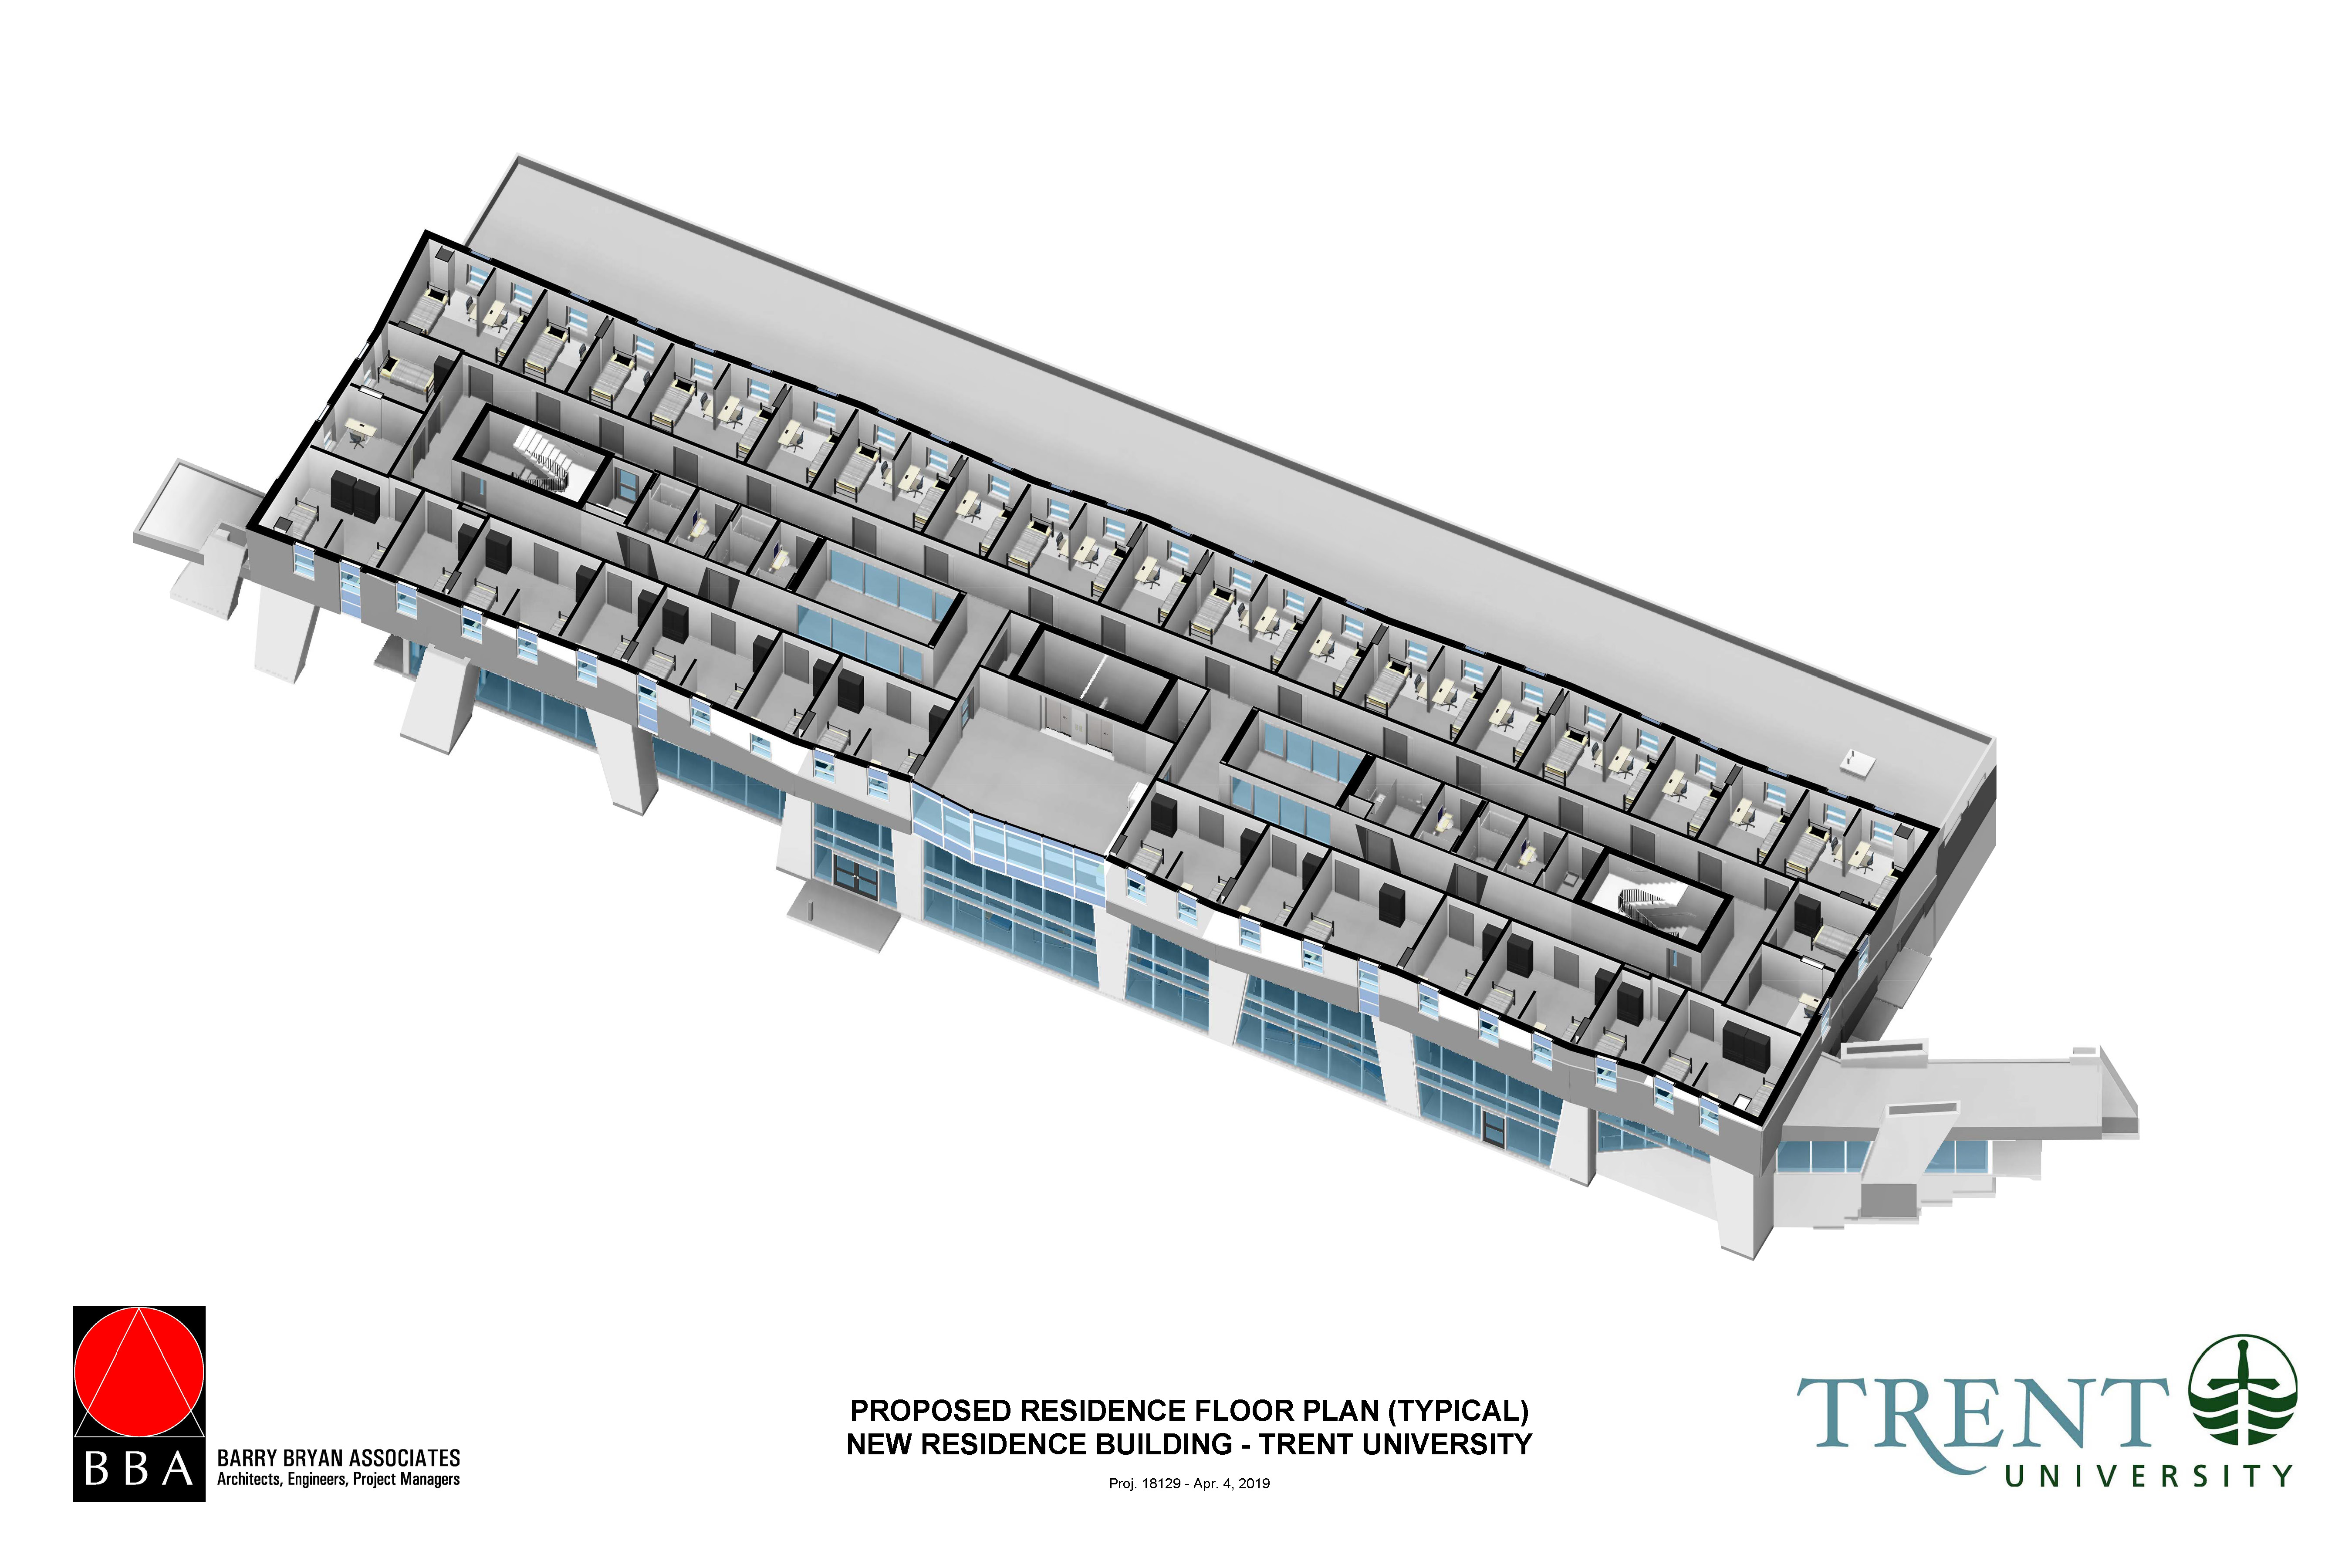 Proposed Residence Floor Plan (Typical), New Residence Building, Trent University Durham GTA